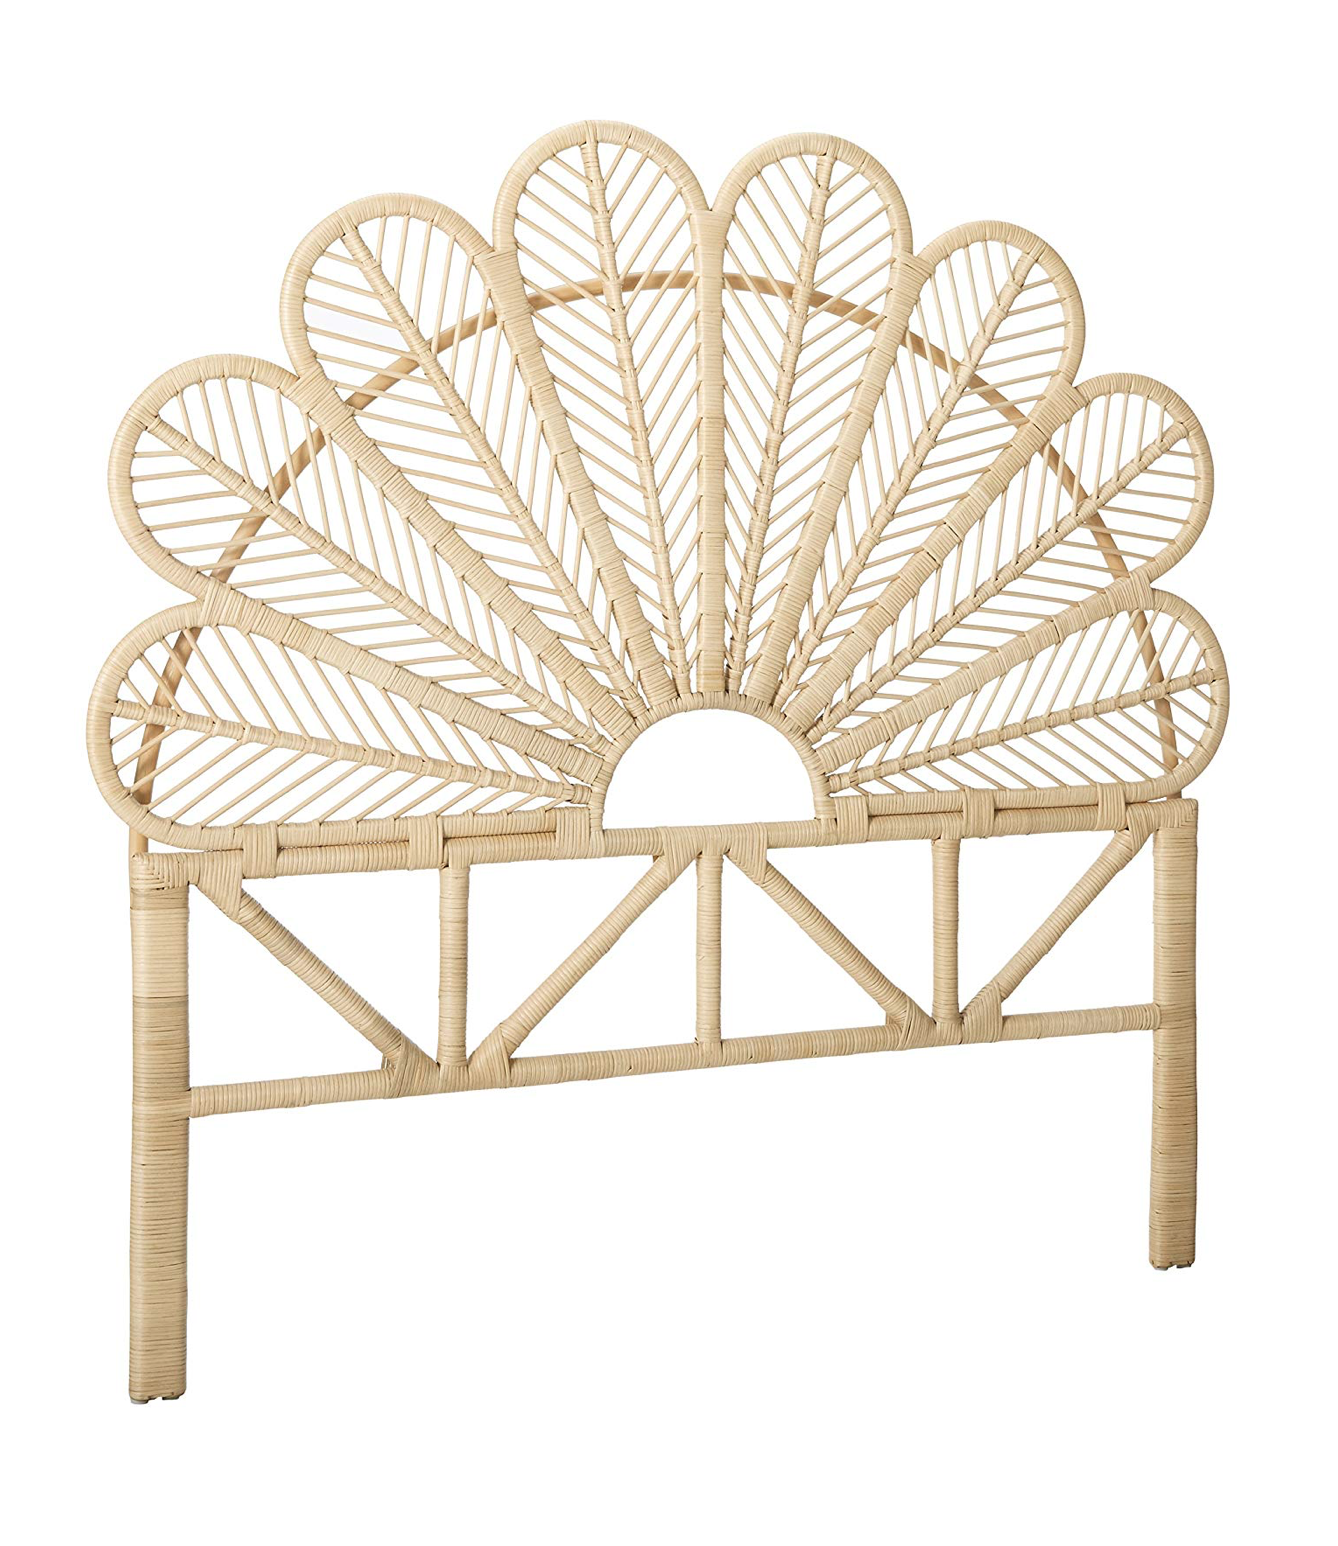 The Daily Hunt Peacock Wicker Mirror And More Katie Considers Rattan Headboard Open Frame Headboard Rattan Bed